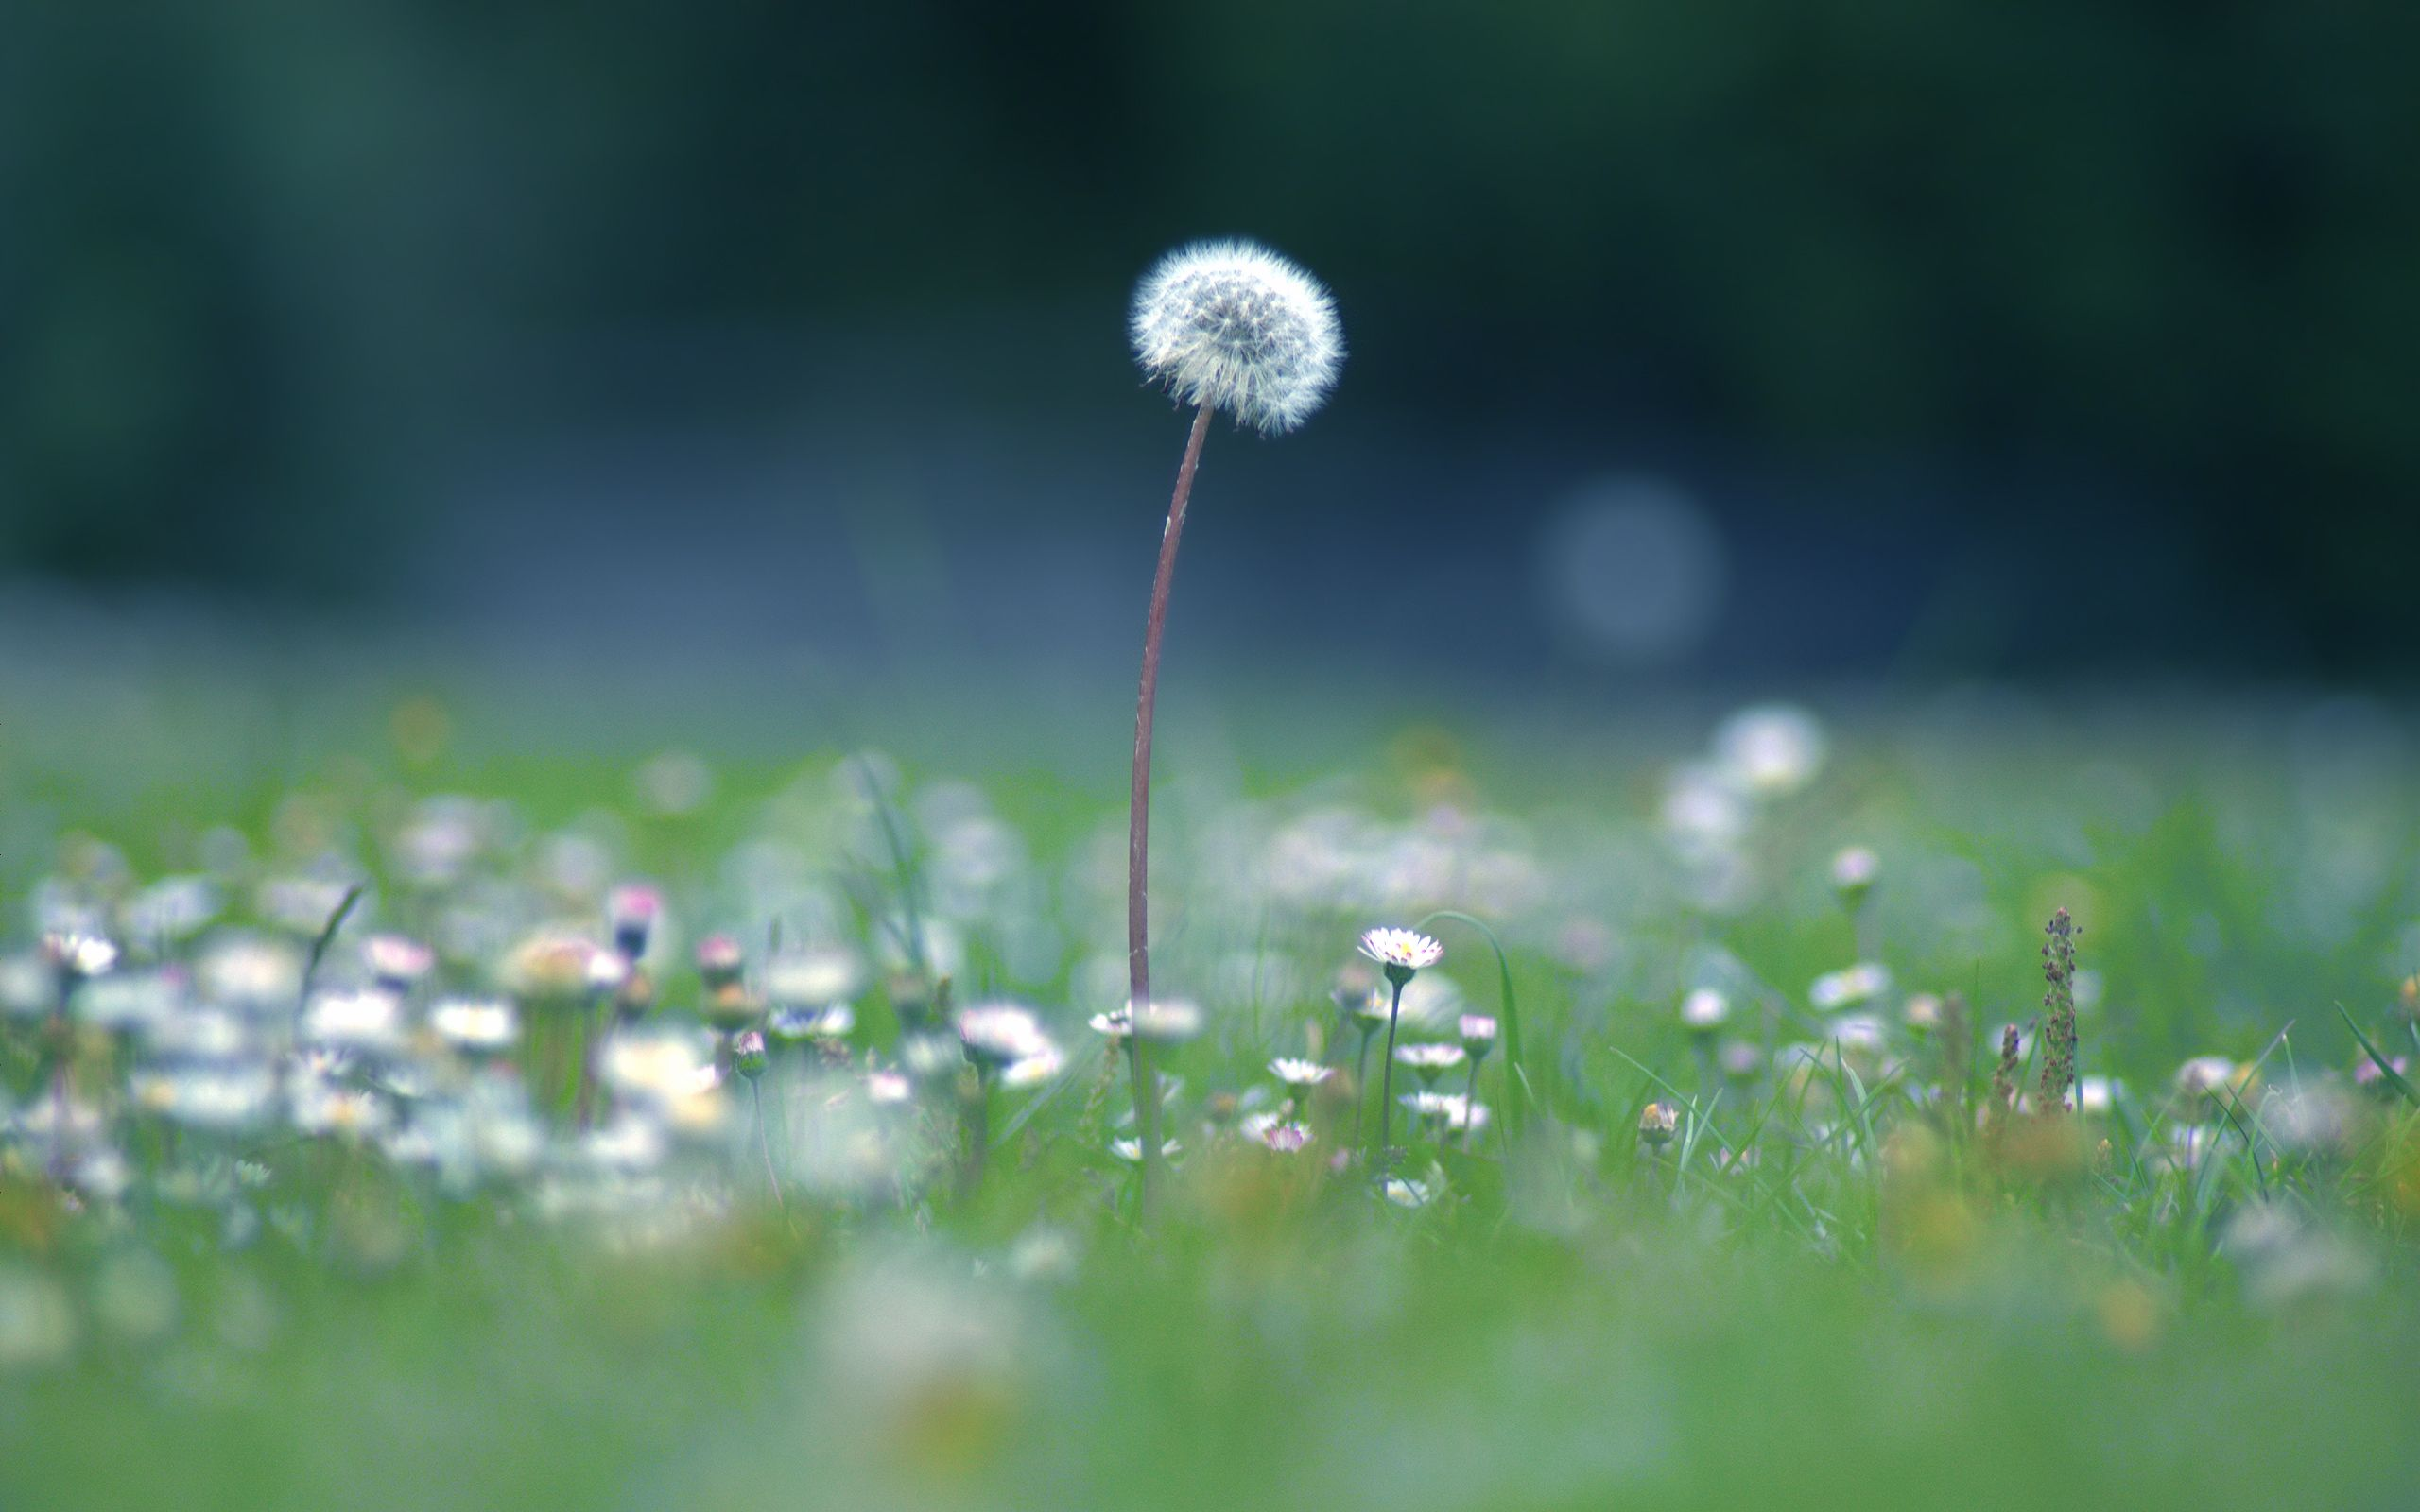 Dandelion Desktop Wallpaper 2560x1600 2560x1600